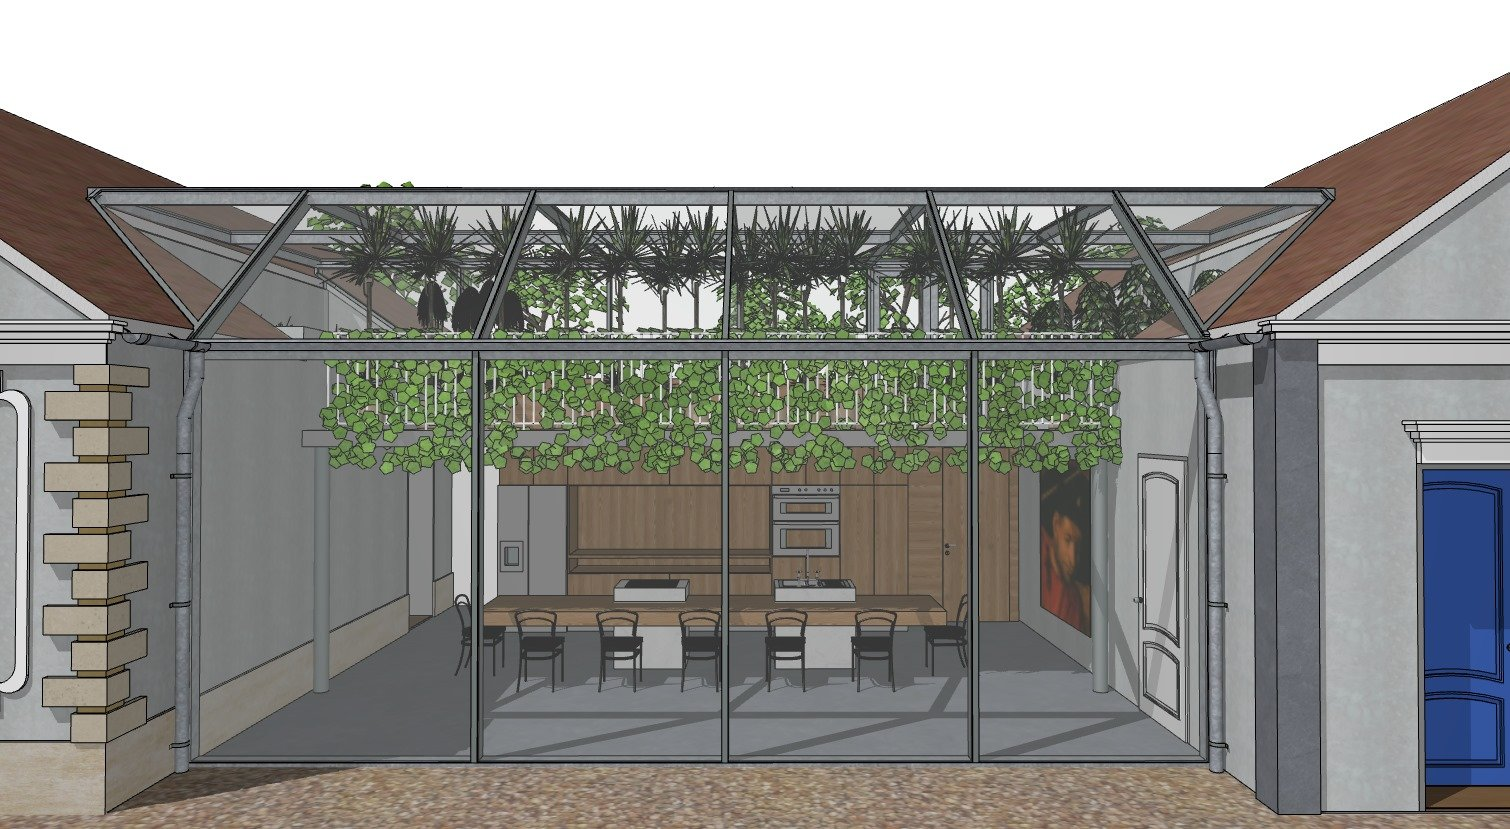 A Drawing of an Outdoor Kitchen Made in Sketchup